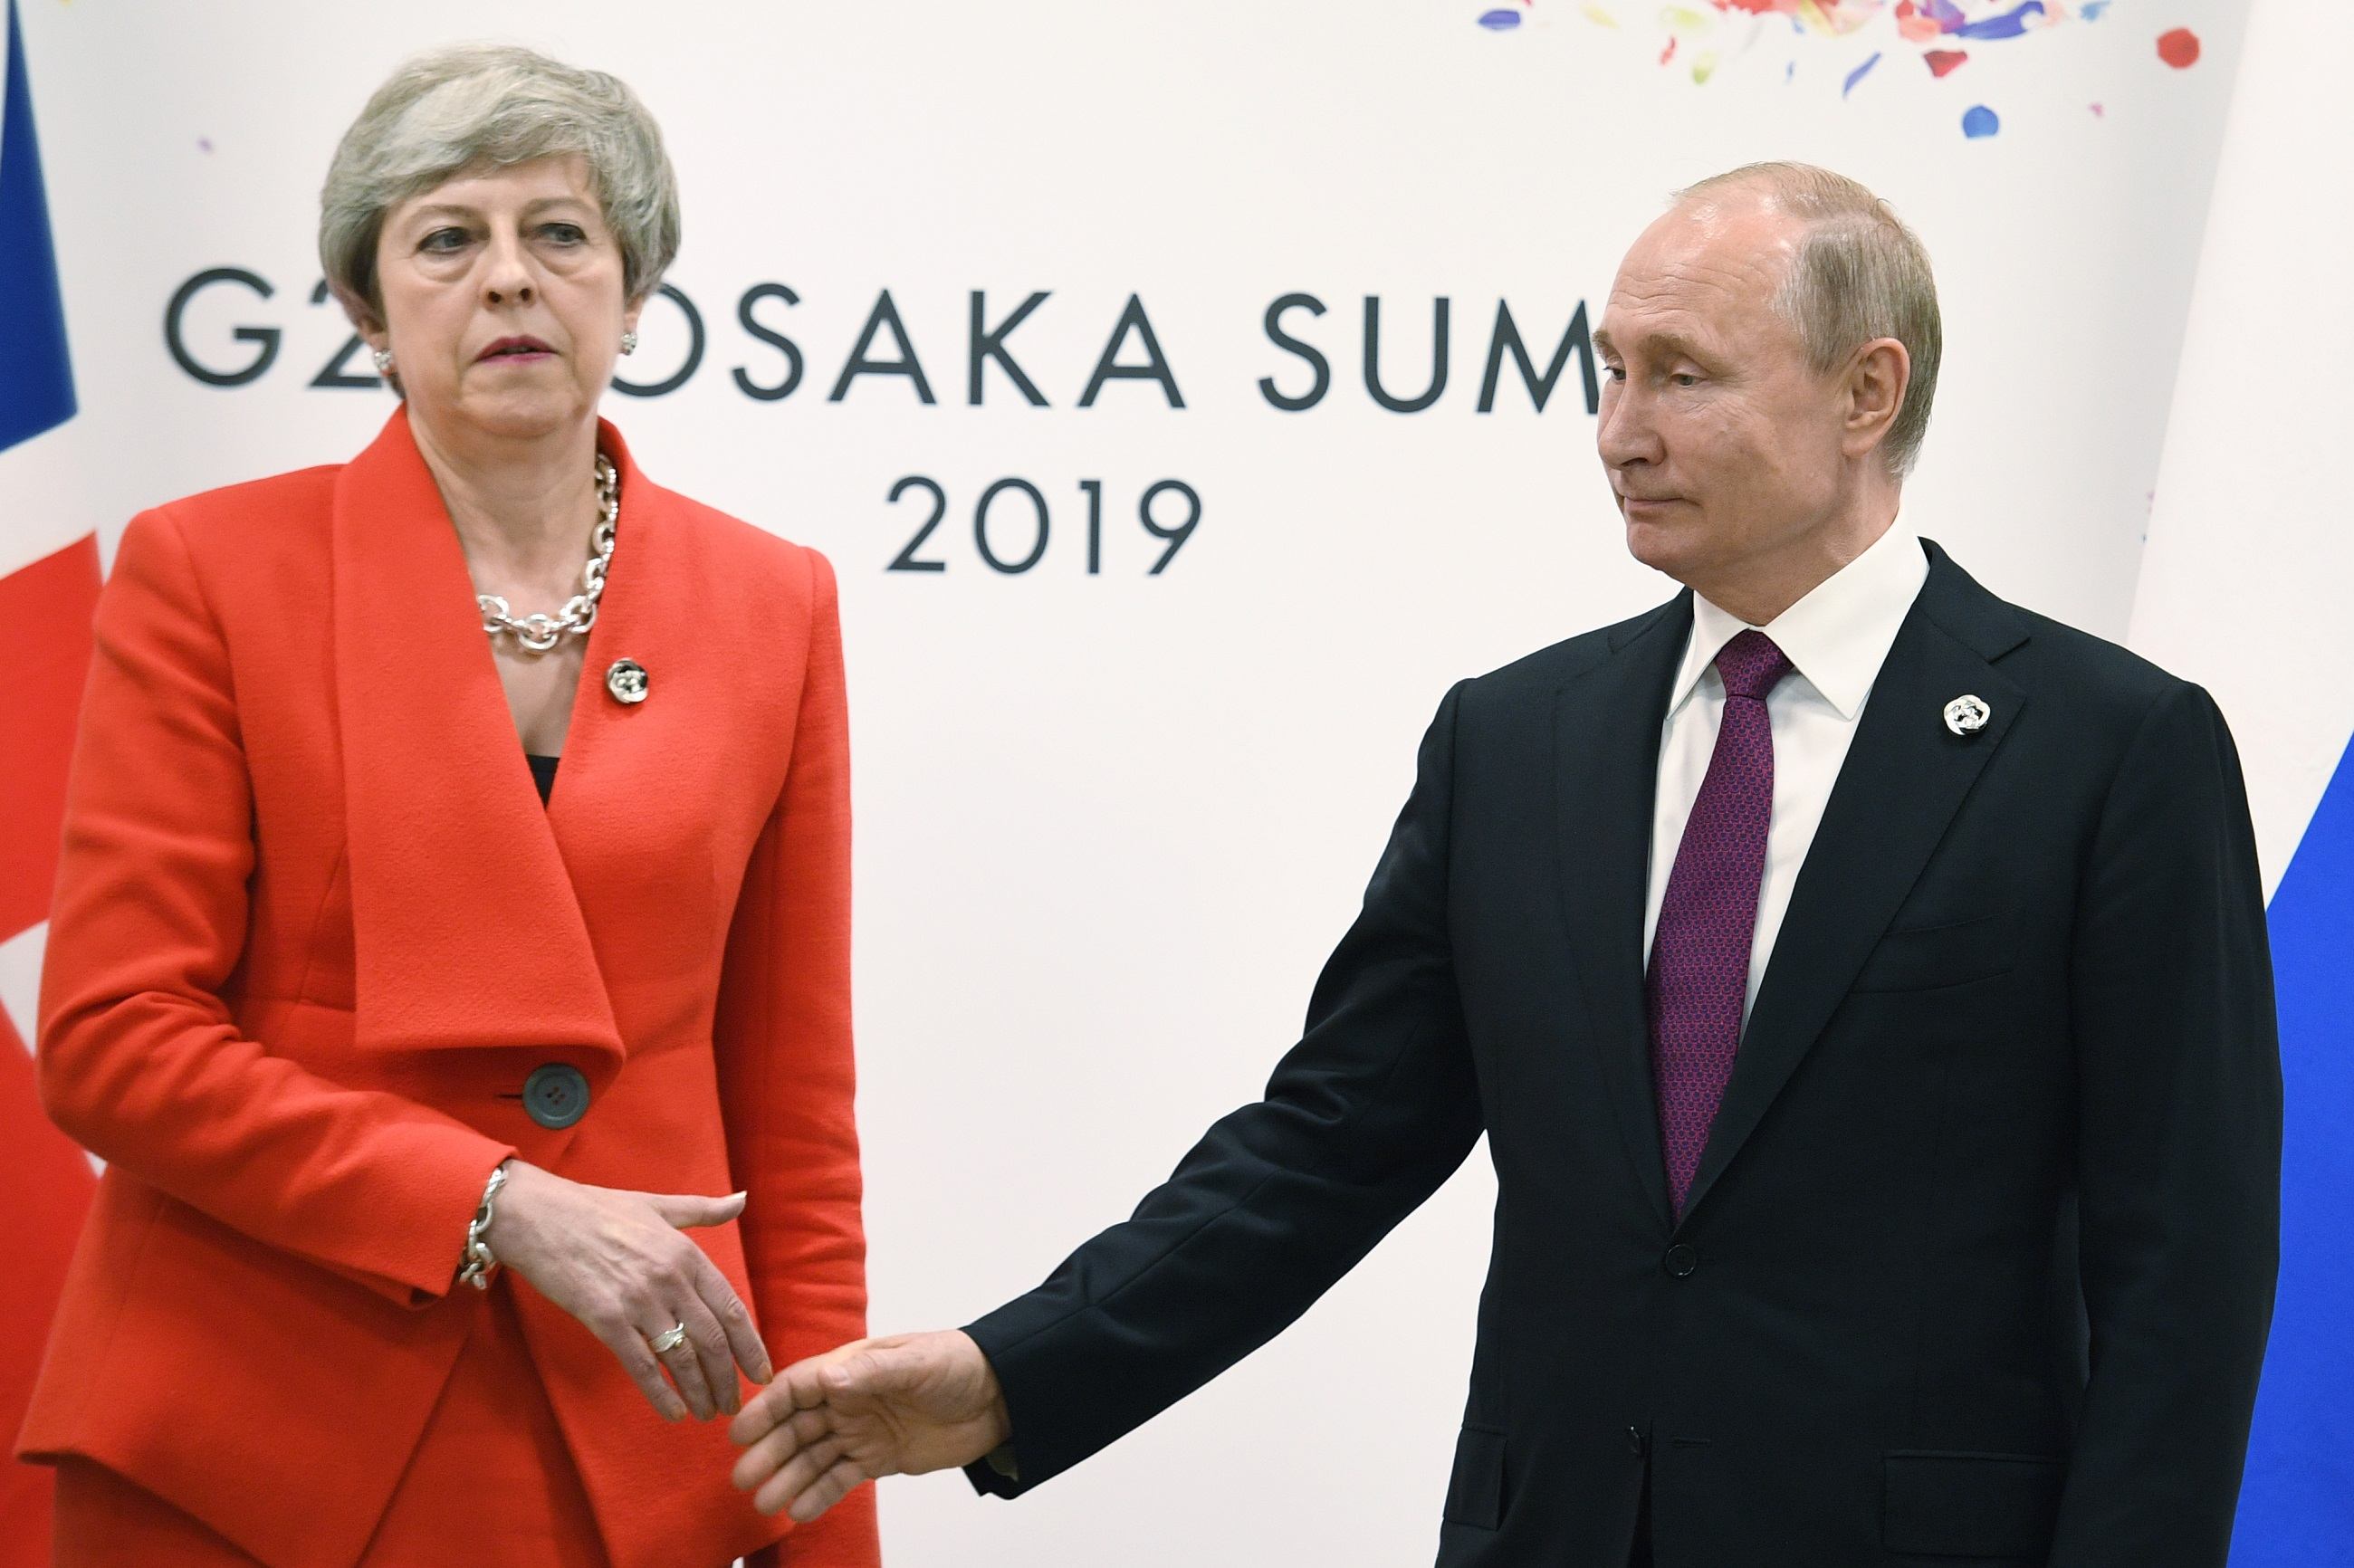 Prime Minister Theresa May meets Russian President Vladimir Putin during the G20 summit in Osaka, Japan.